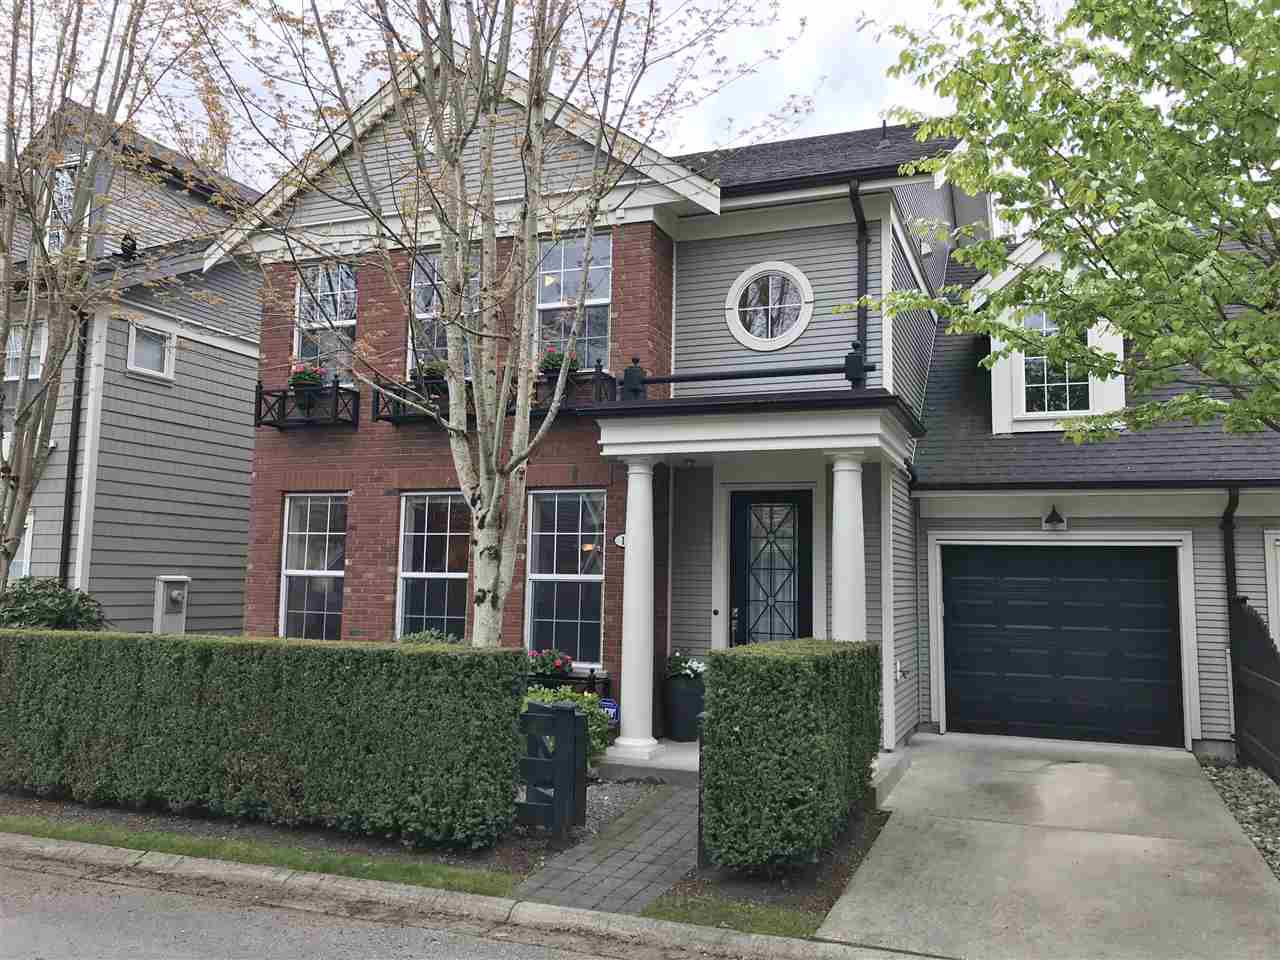 Main Photo: 18 19490 FRASER WAY in Pitt Meadows: South Meadows Townhouse for sale : MLS®# R2444045